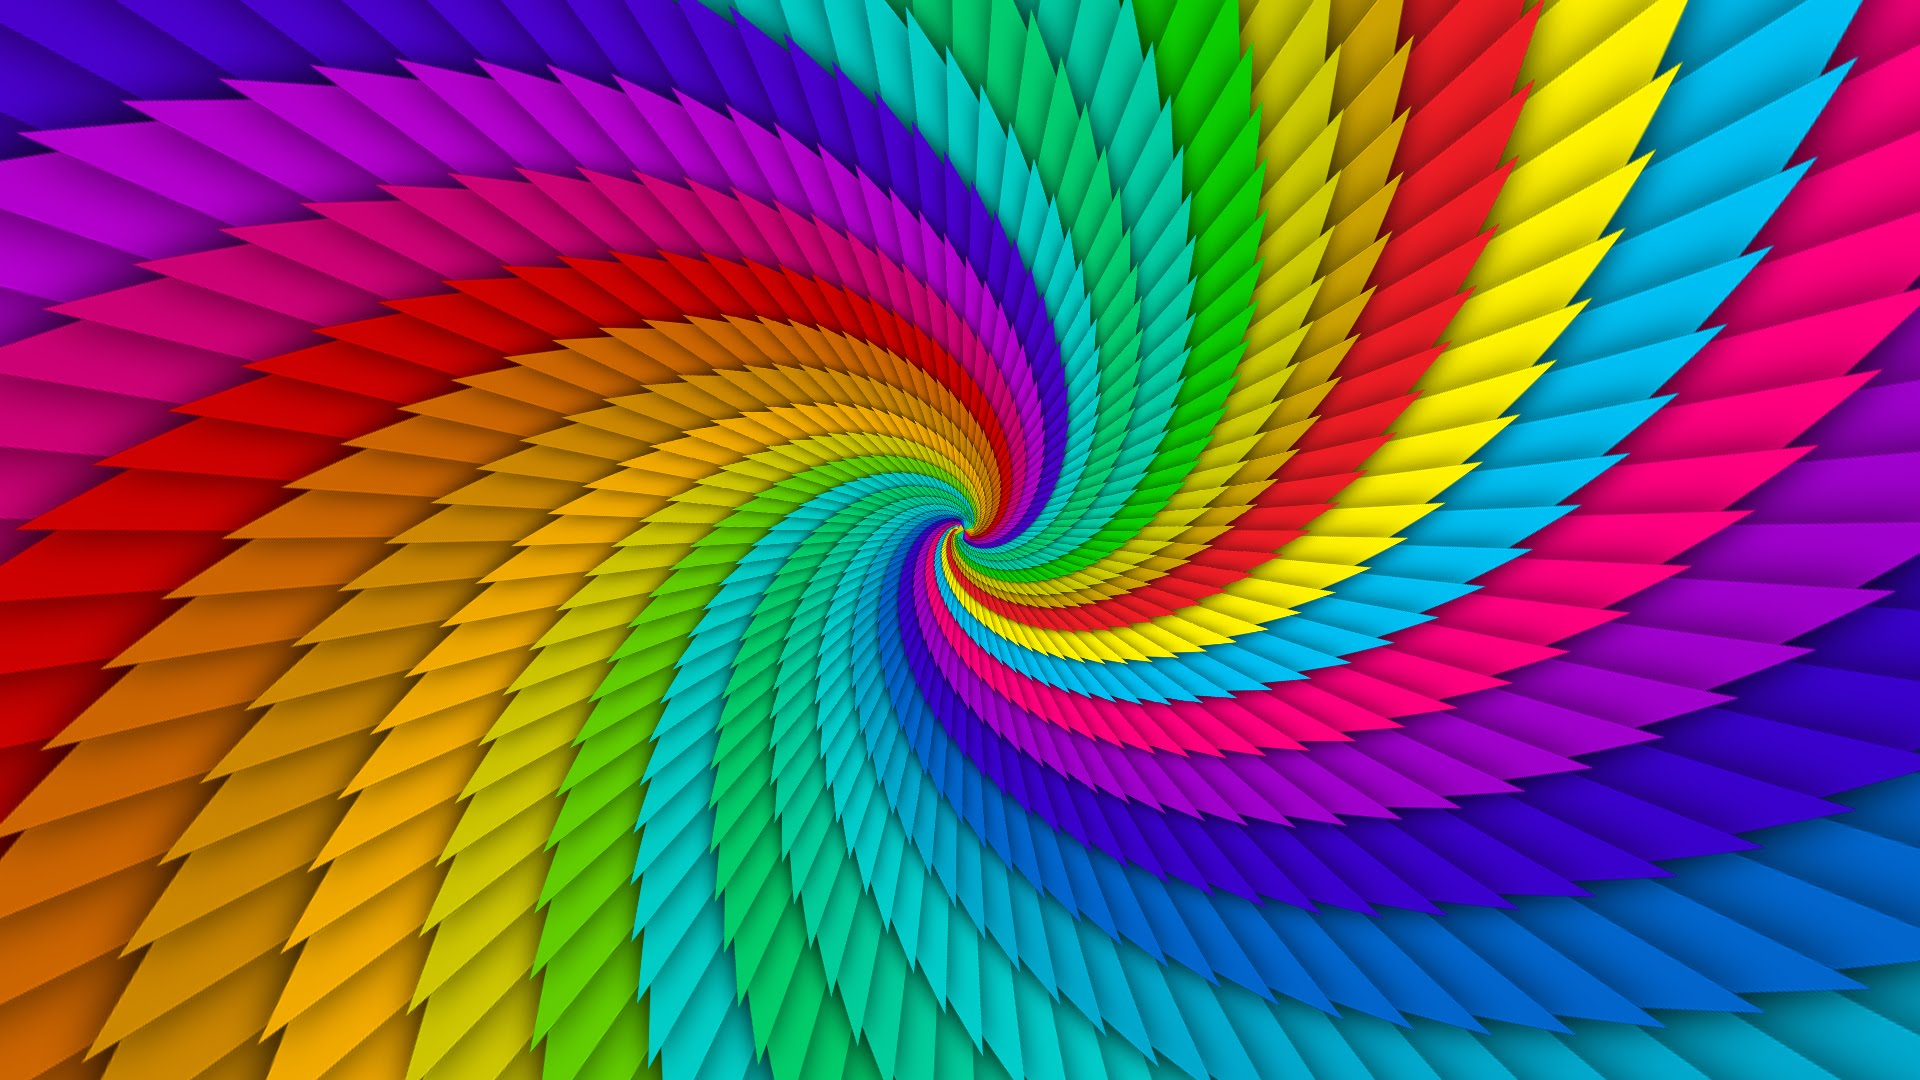 How to create colorful swirl background in adobe Photoshop cc - YouTube